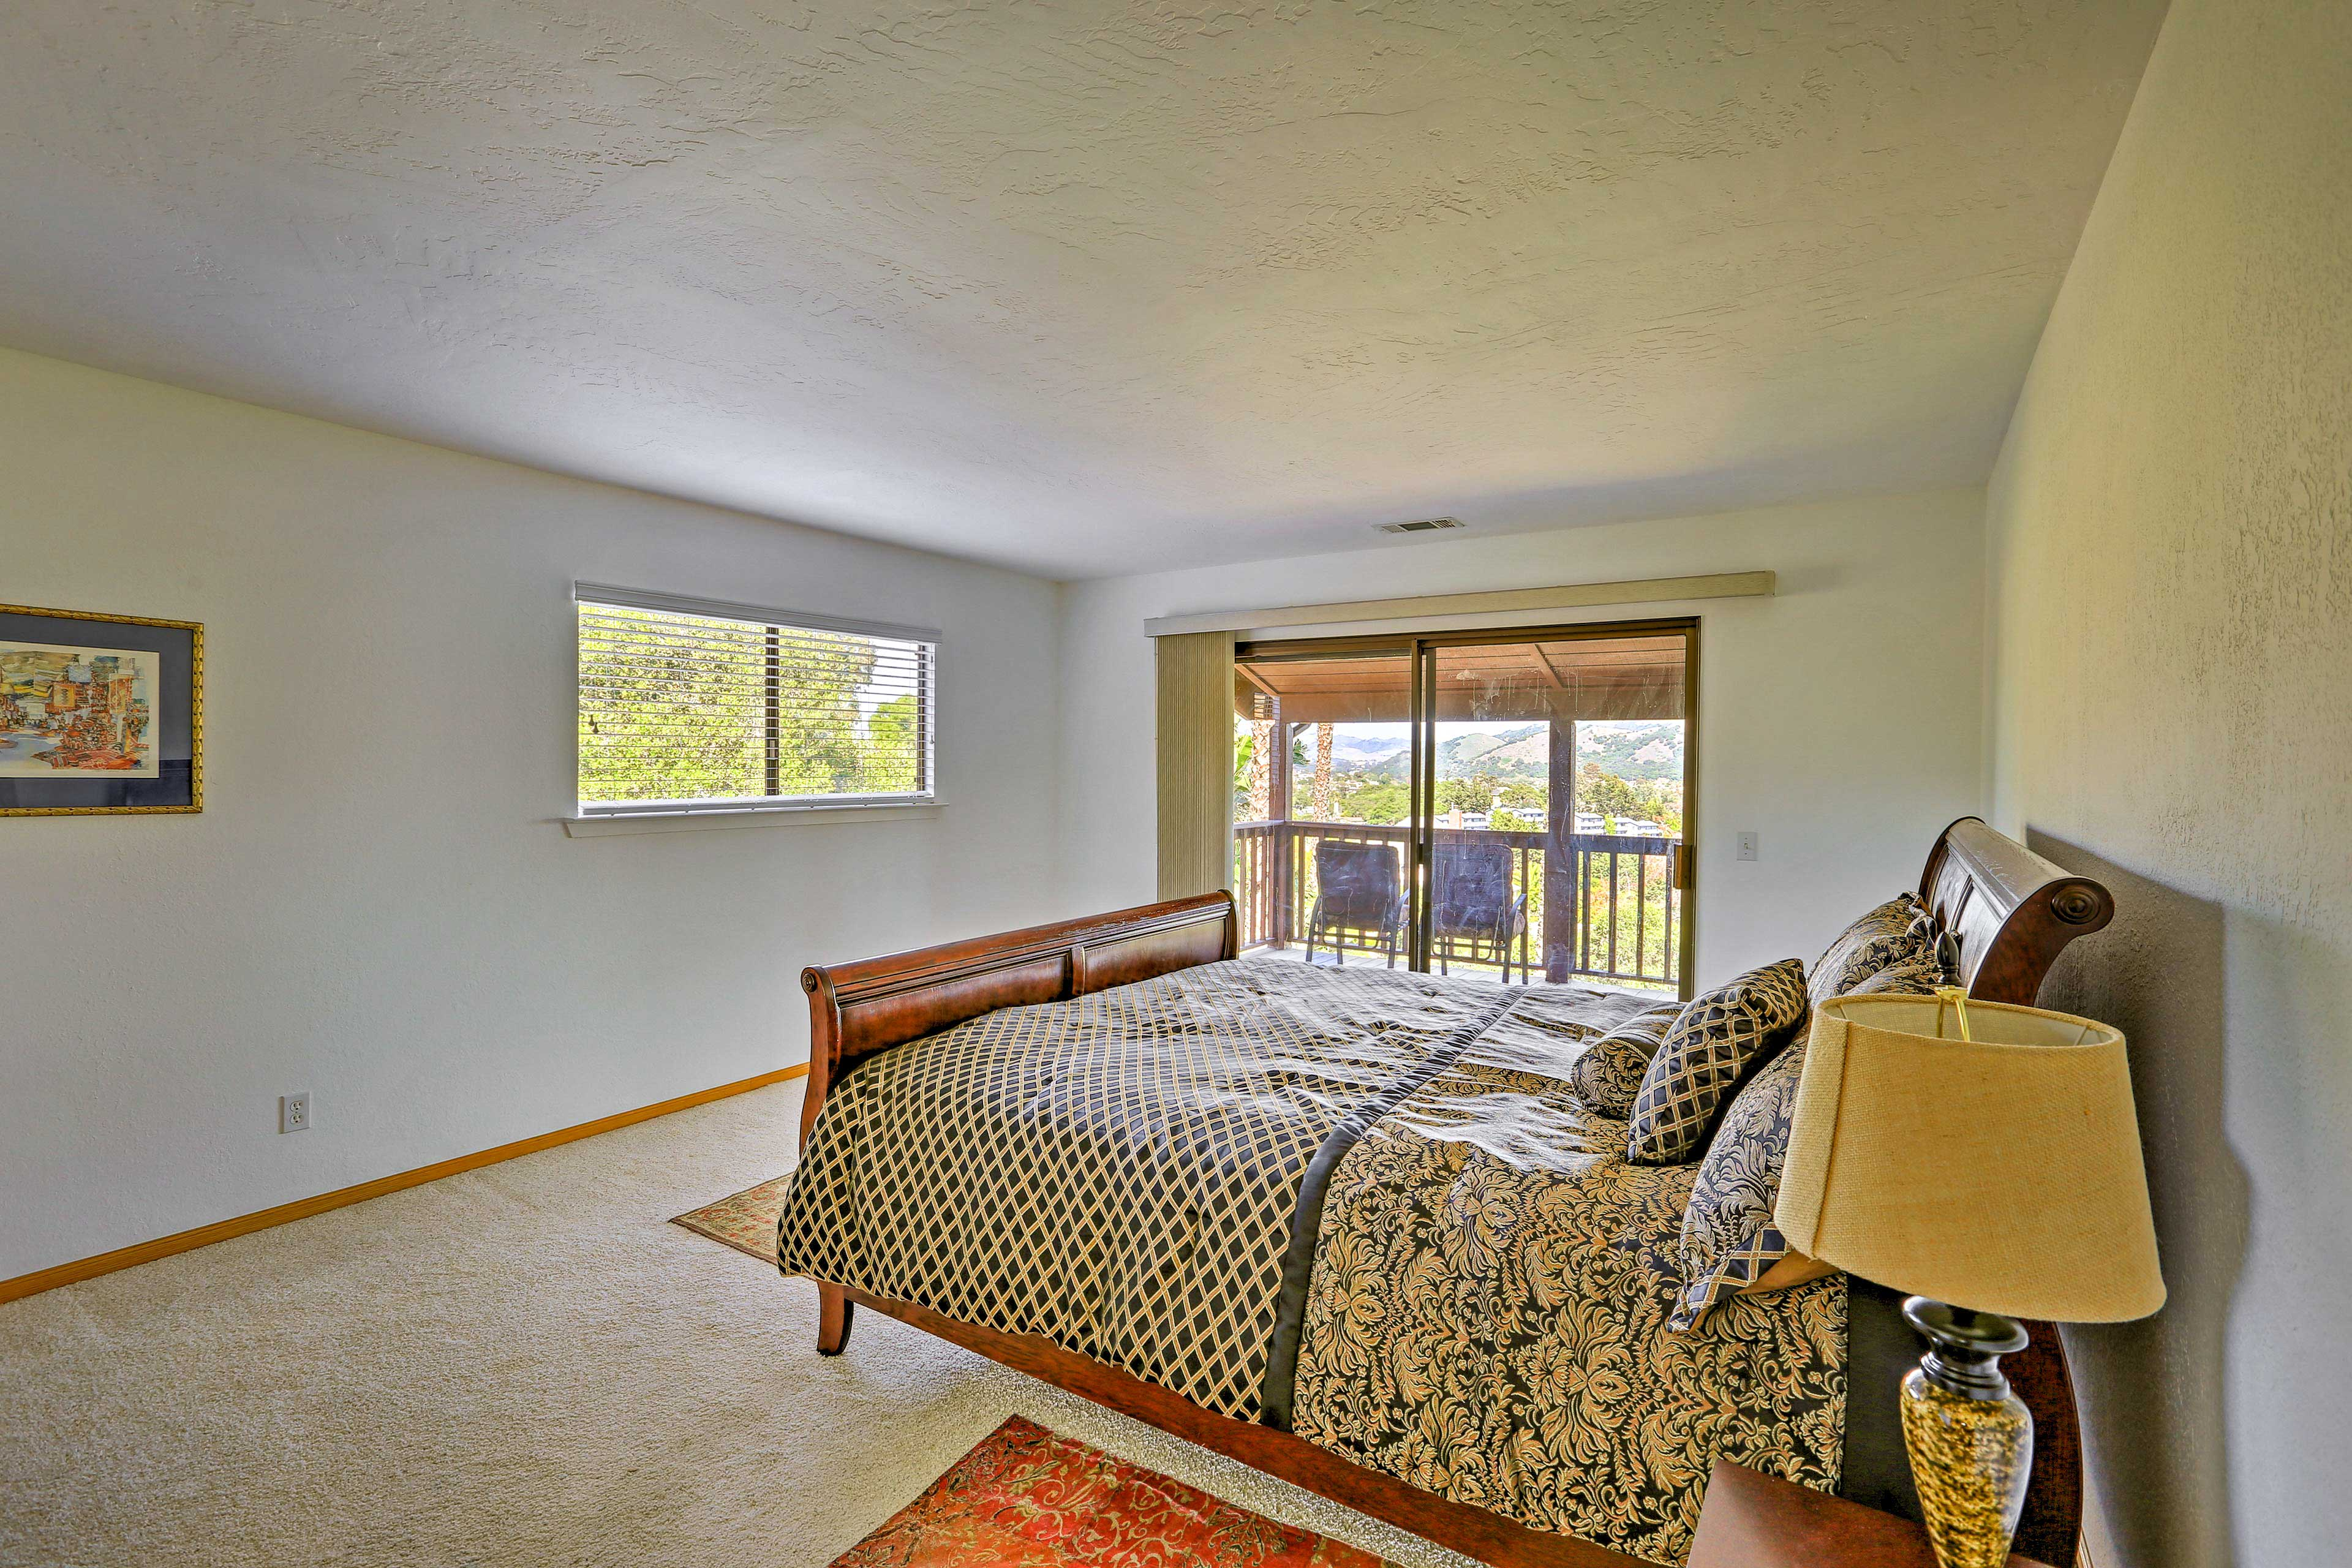 Sleep will come easy in the well-appointed Master Bedroom.